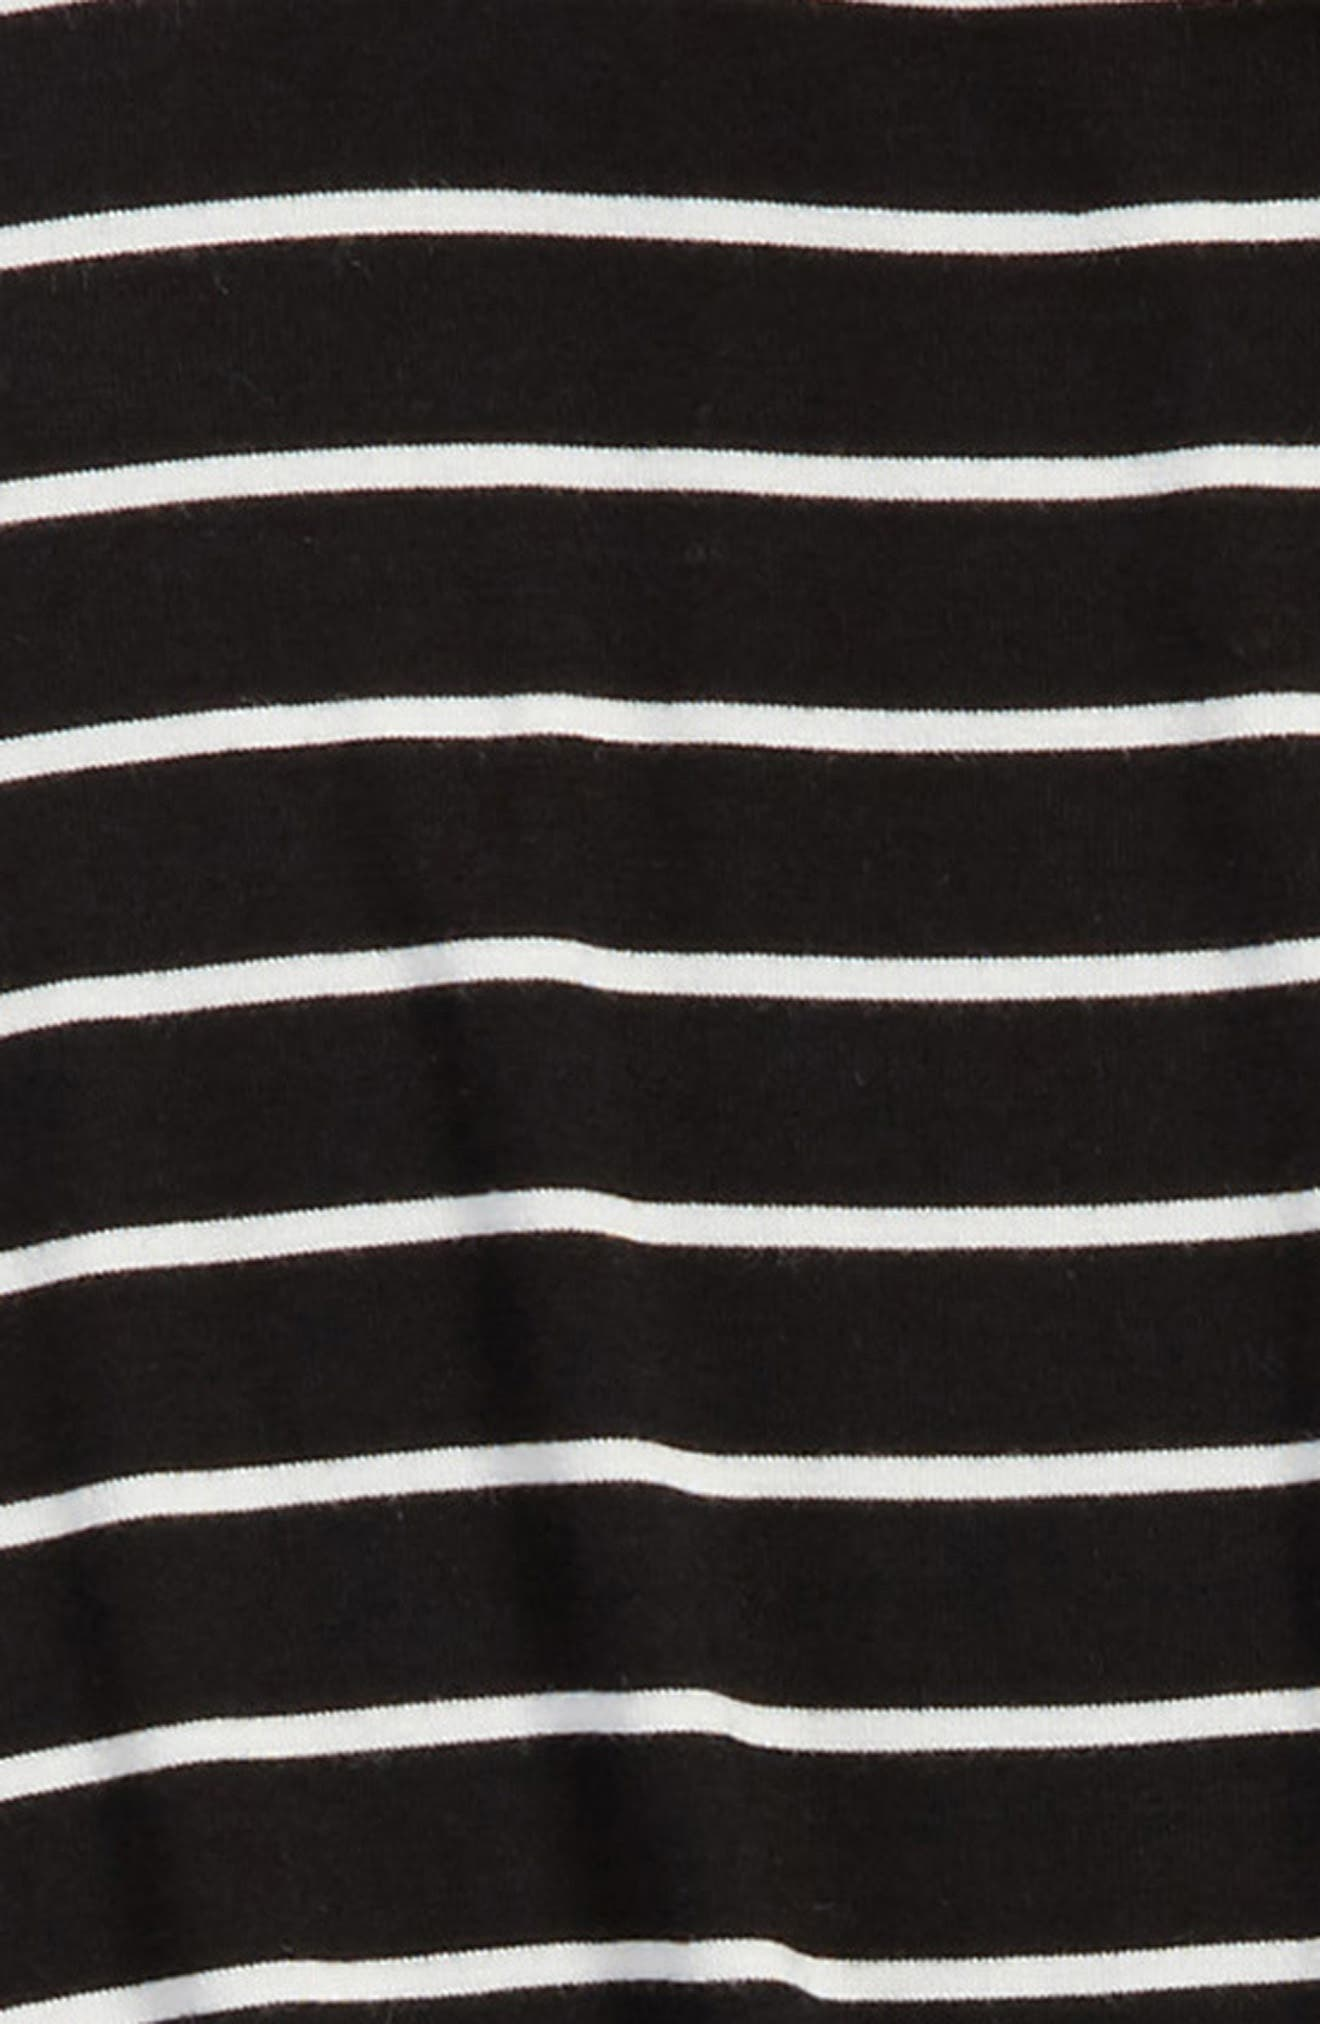 Knotted Stripe Tee,                             Alternate thumbnail 2, color,                             001